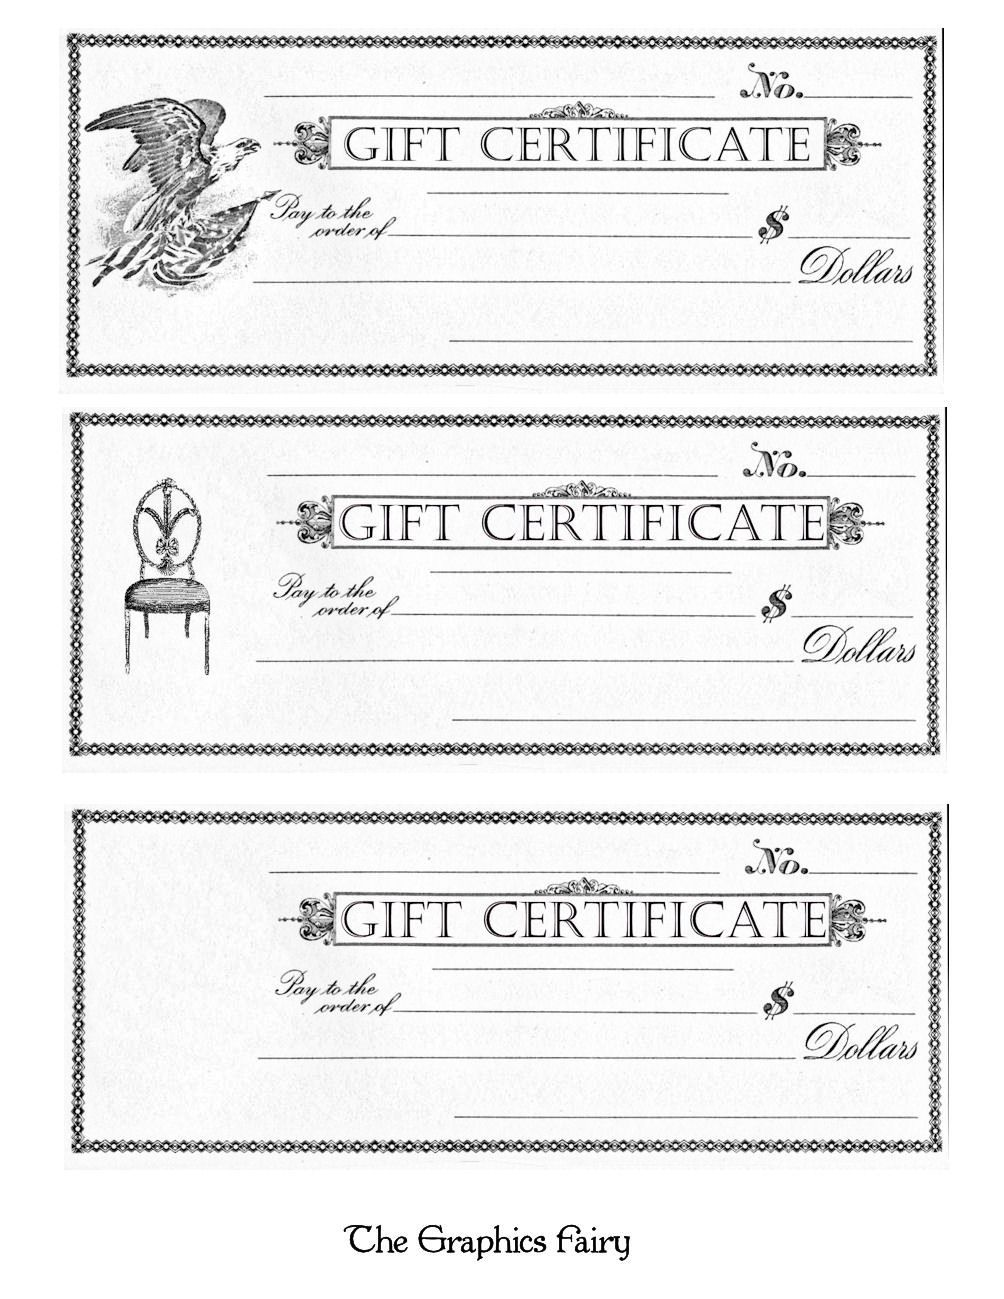 Blank gift certificates saving money free printable gift blank gift certificates saving money free printable gift certificates gift certificates and certificate yadclub Choice Image